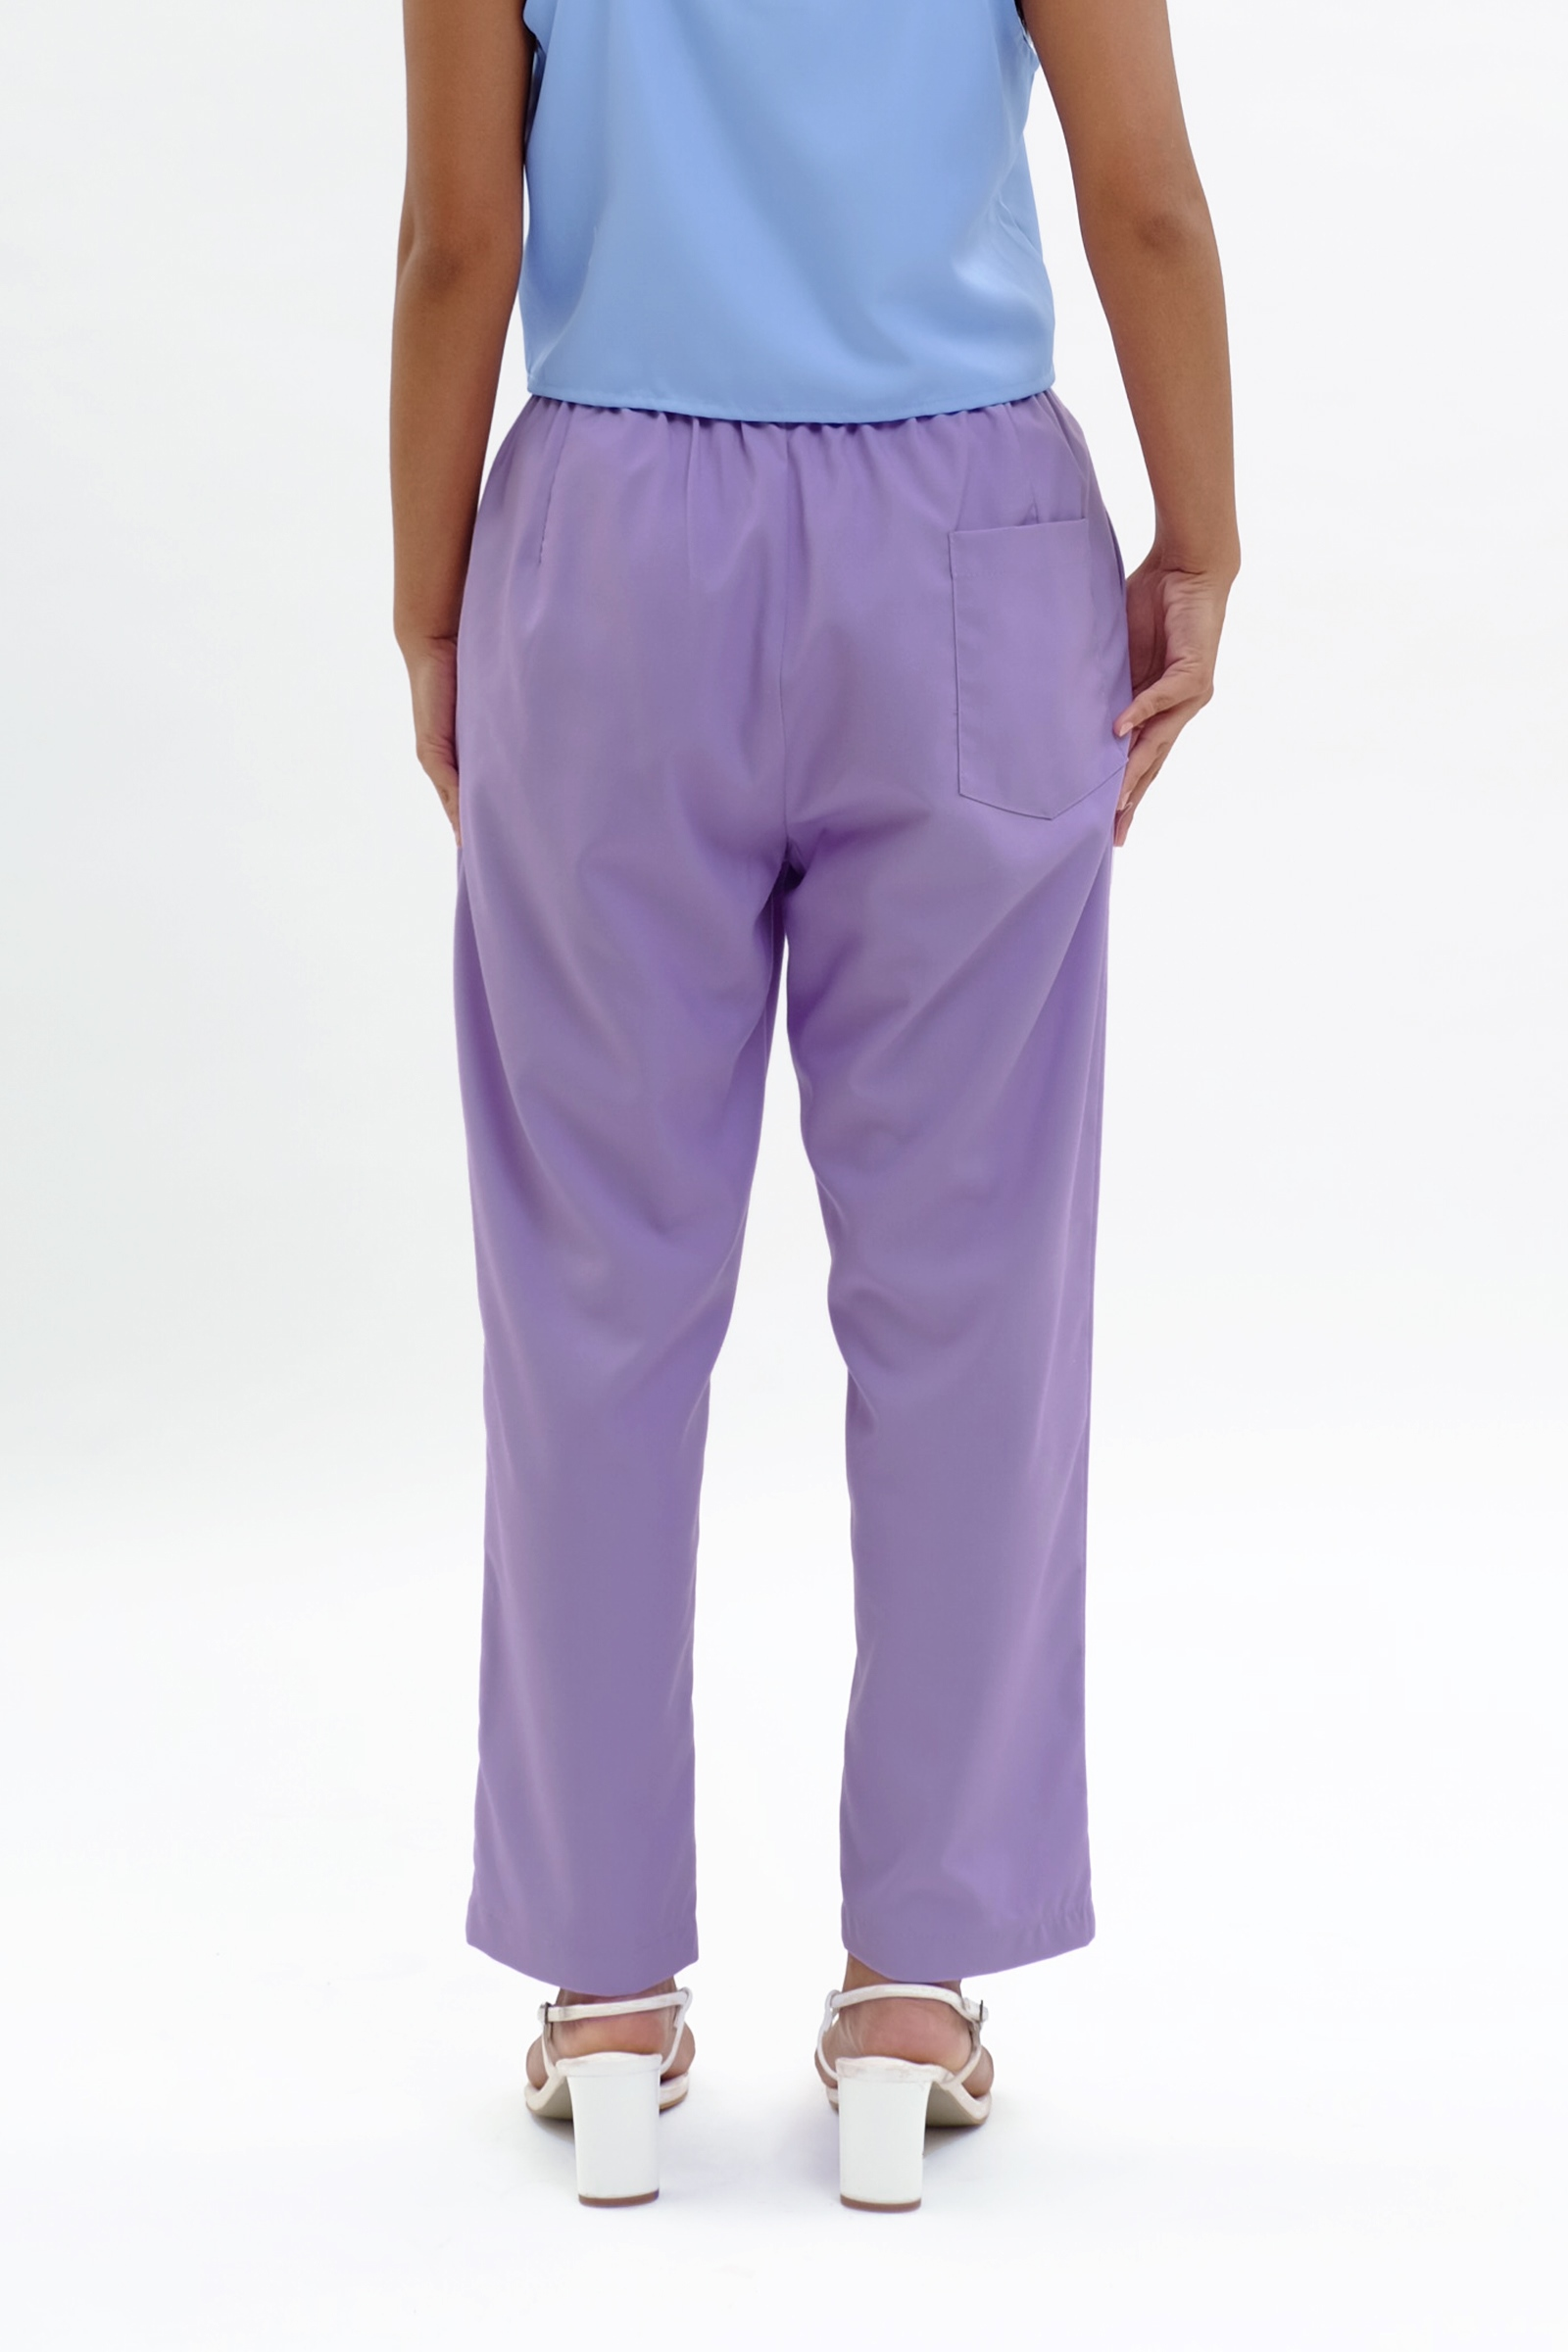 Picture of Emery Pants Sheer Lilac